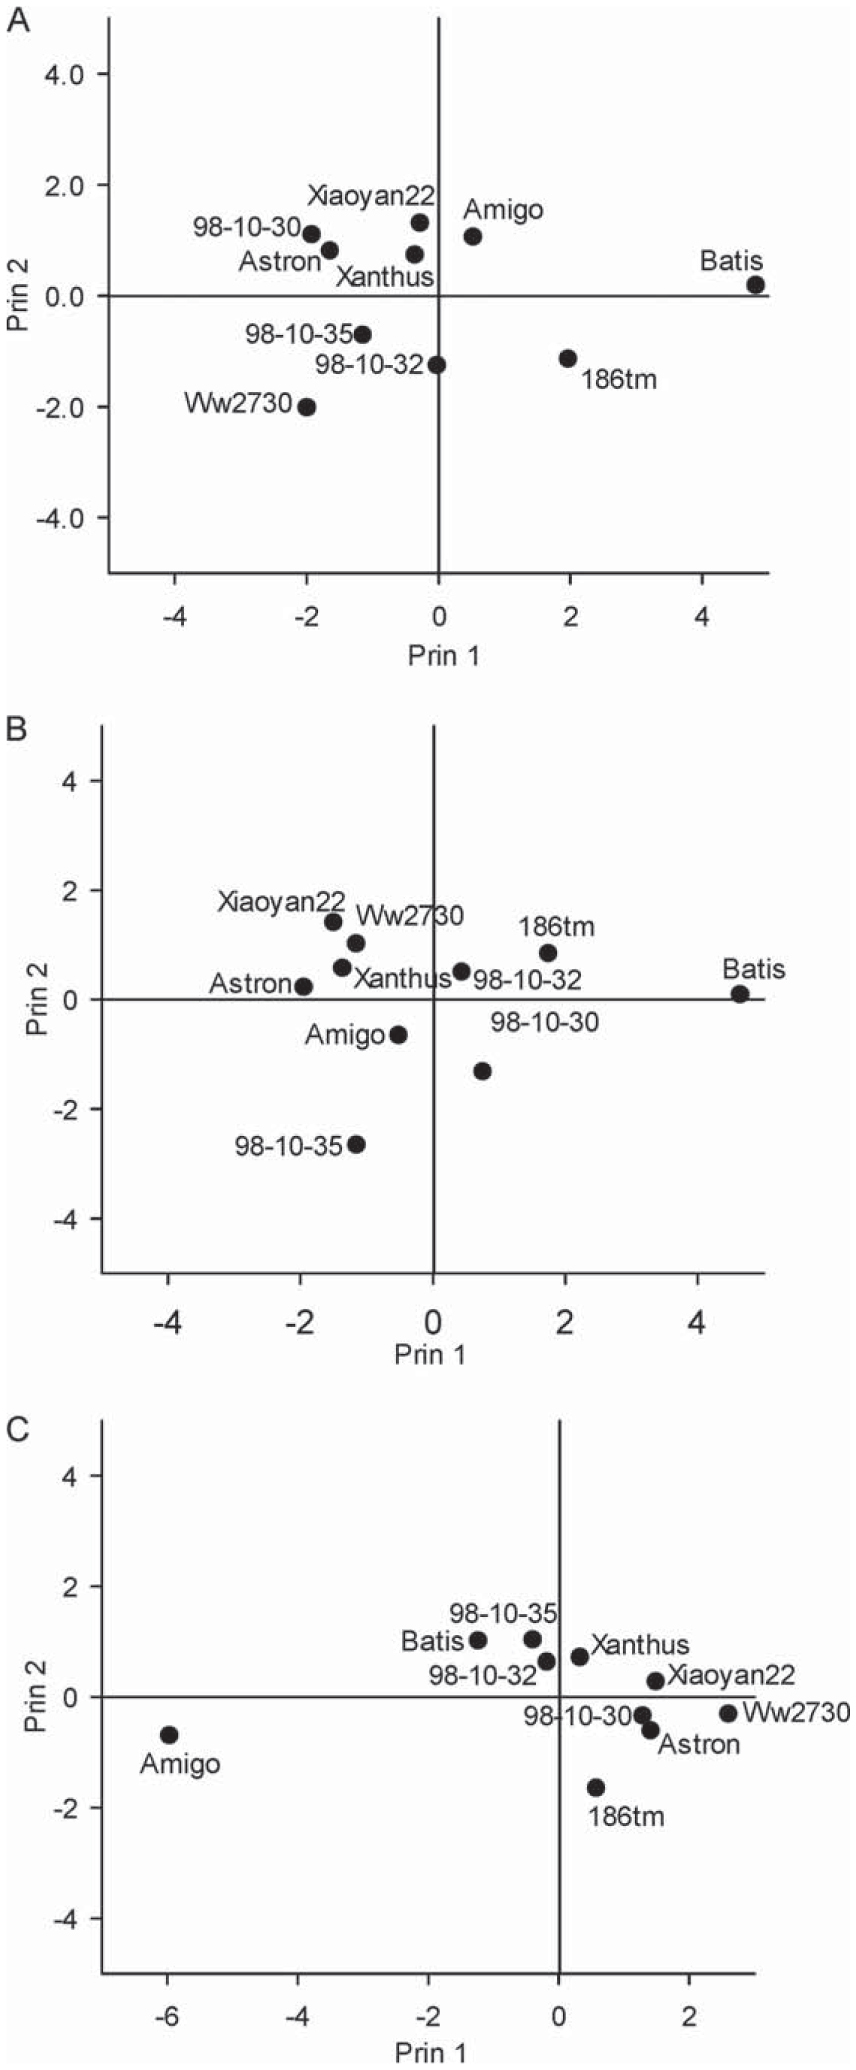 The Resistance and Correlation Analysis to Three Species of